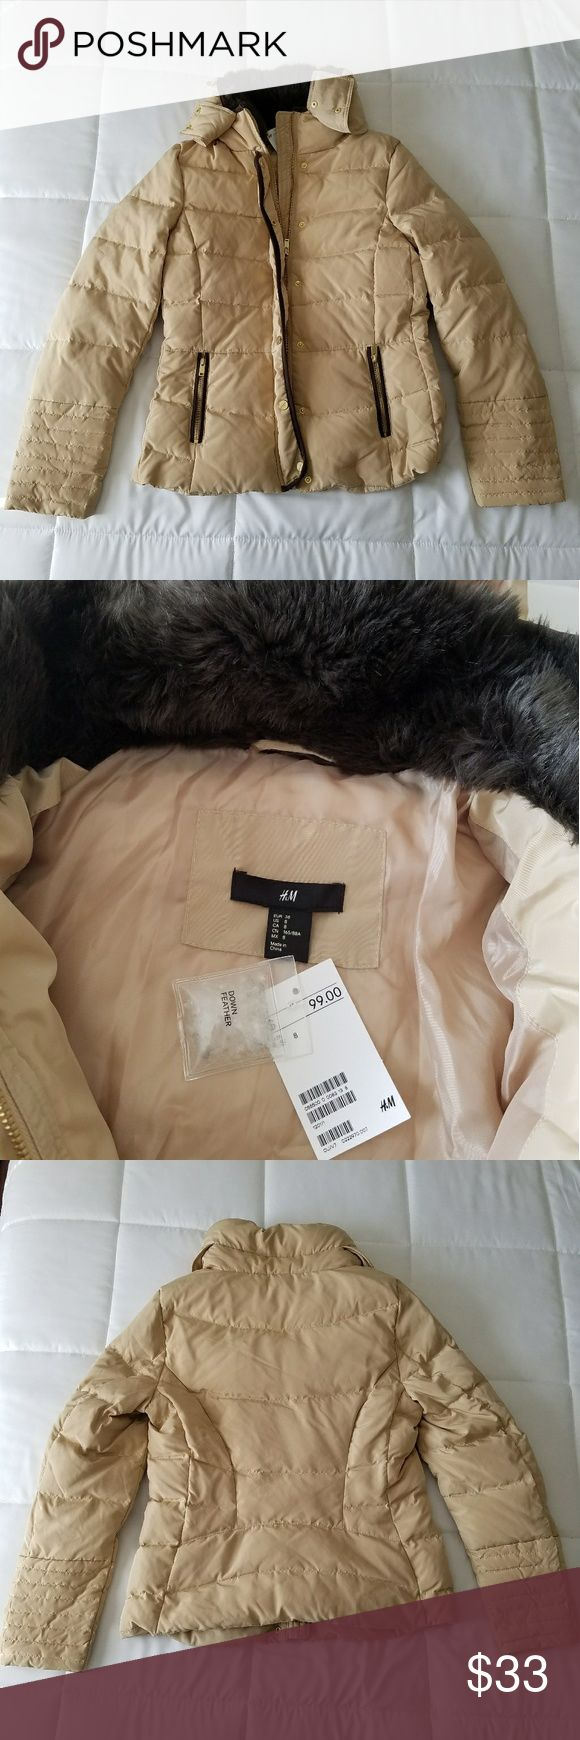 H&M down feather filled puff jacket. With faux fur Get ready for the winter with this down feathered filled jacket. The neckline is lined with faux fur for extra warmth and comfort. The back of the neck line has a hidden zipper compartment which reveals a hood when opened. It also has two pockets in the front to store your favorite lip gloss or moisturizer. Buttons are slightly worn but work as well as all zippers. Has slight markings on the back and left arm, very unnoticeable from far…